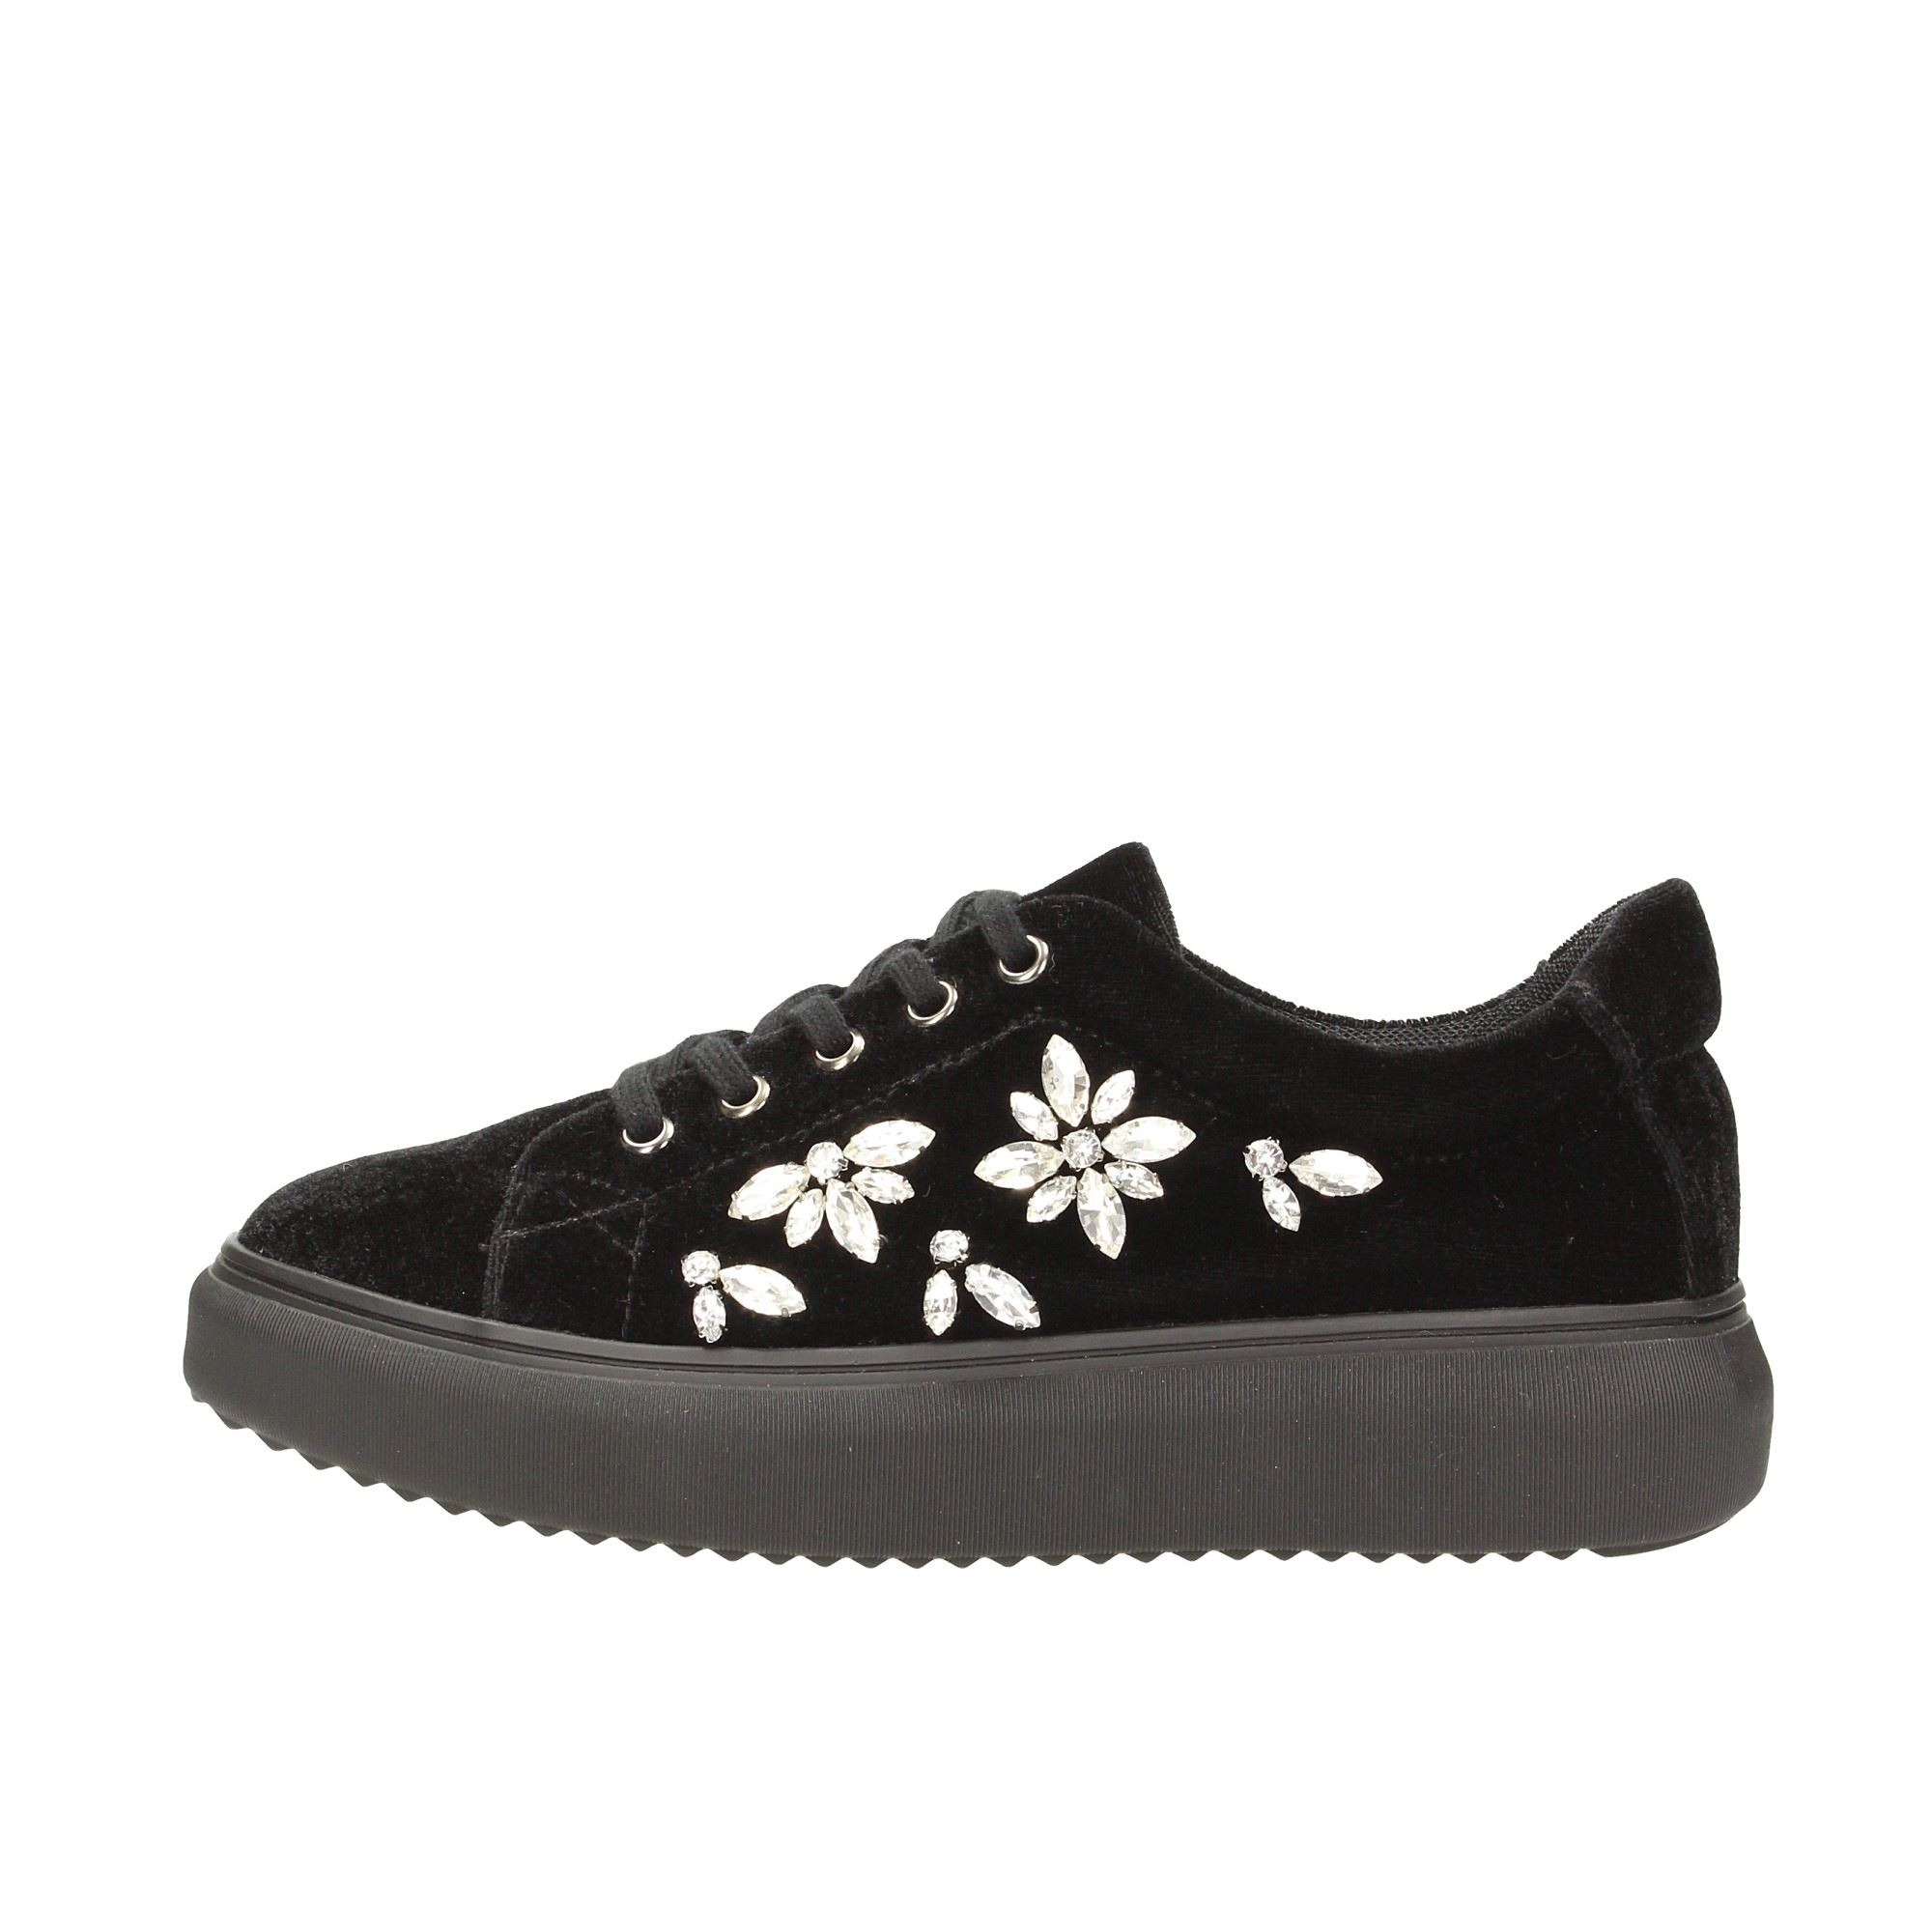 Tata Italia Shoes Woman Sneakers Black 10238-5